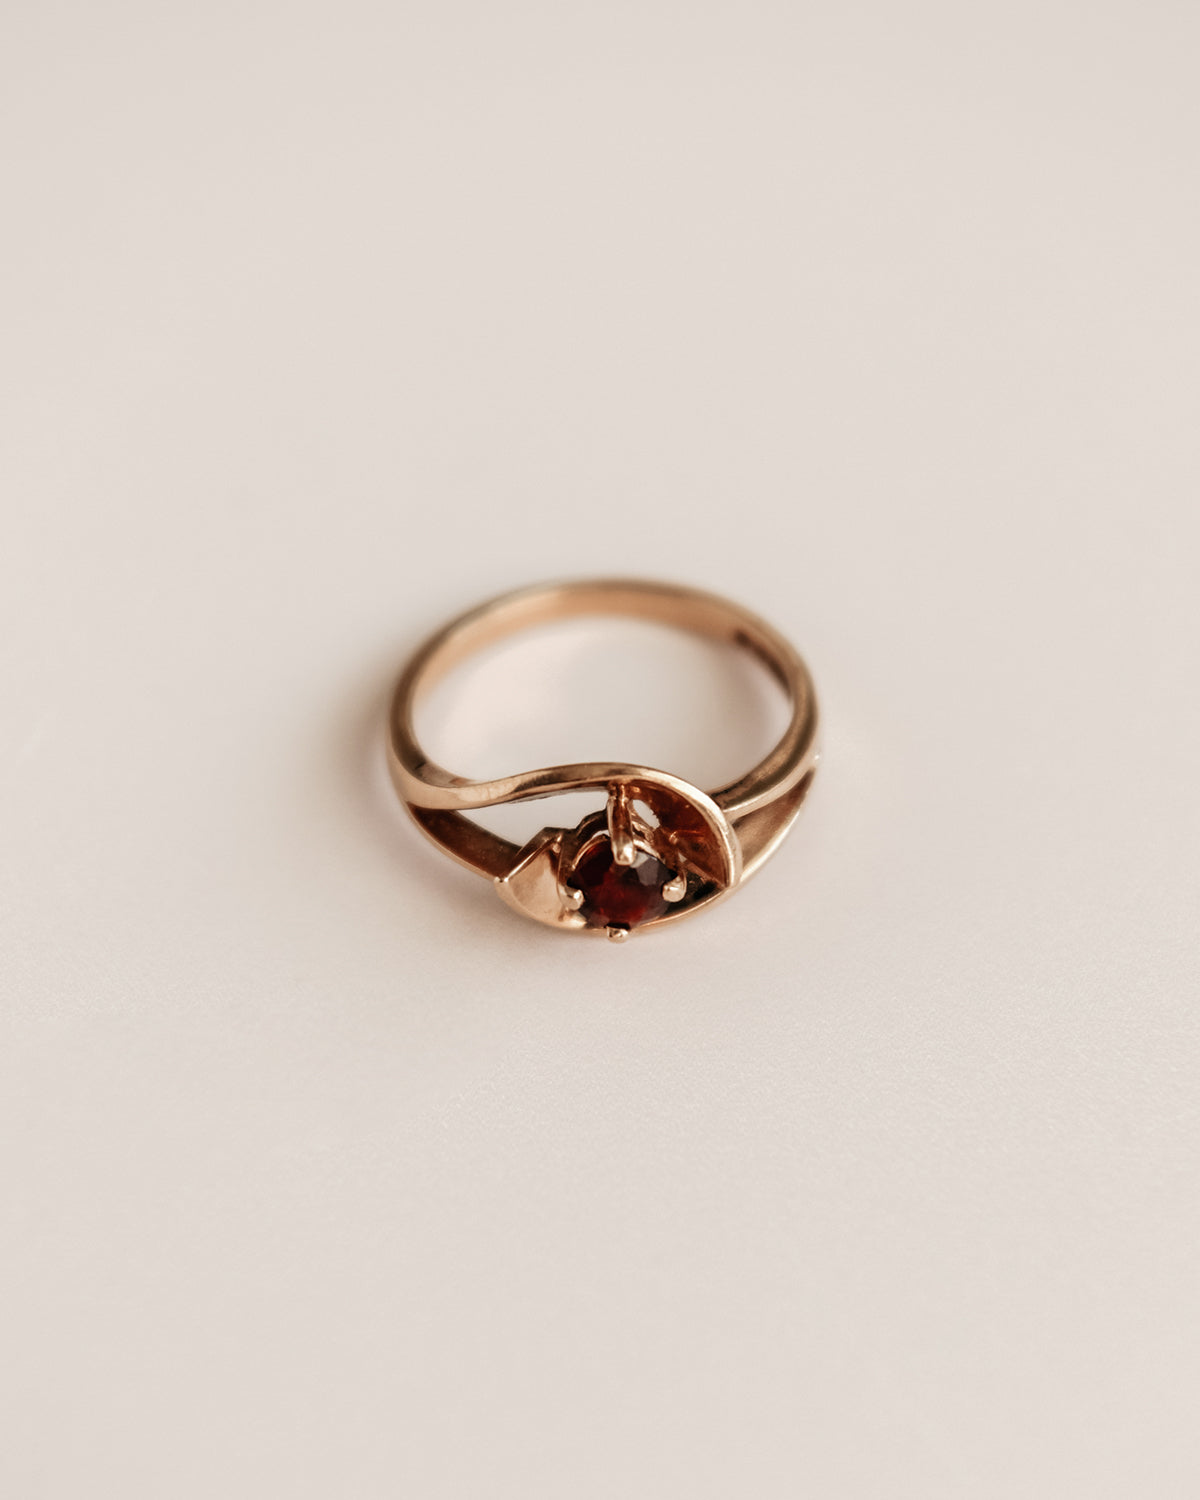 Image of Samantha 9ct Gold Garnet Ring